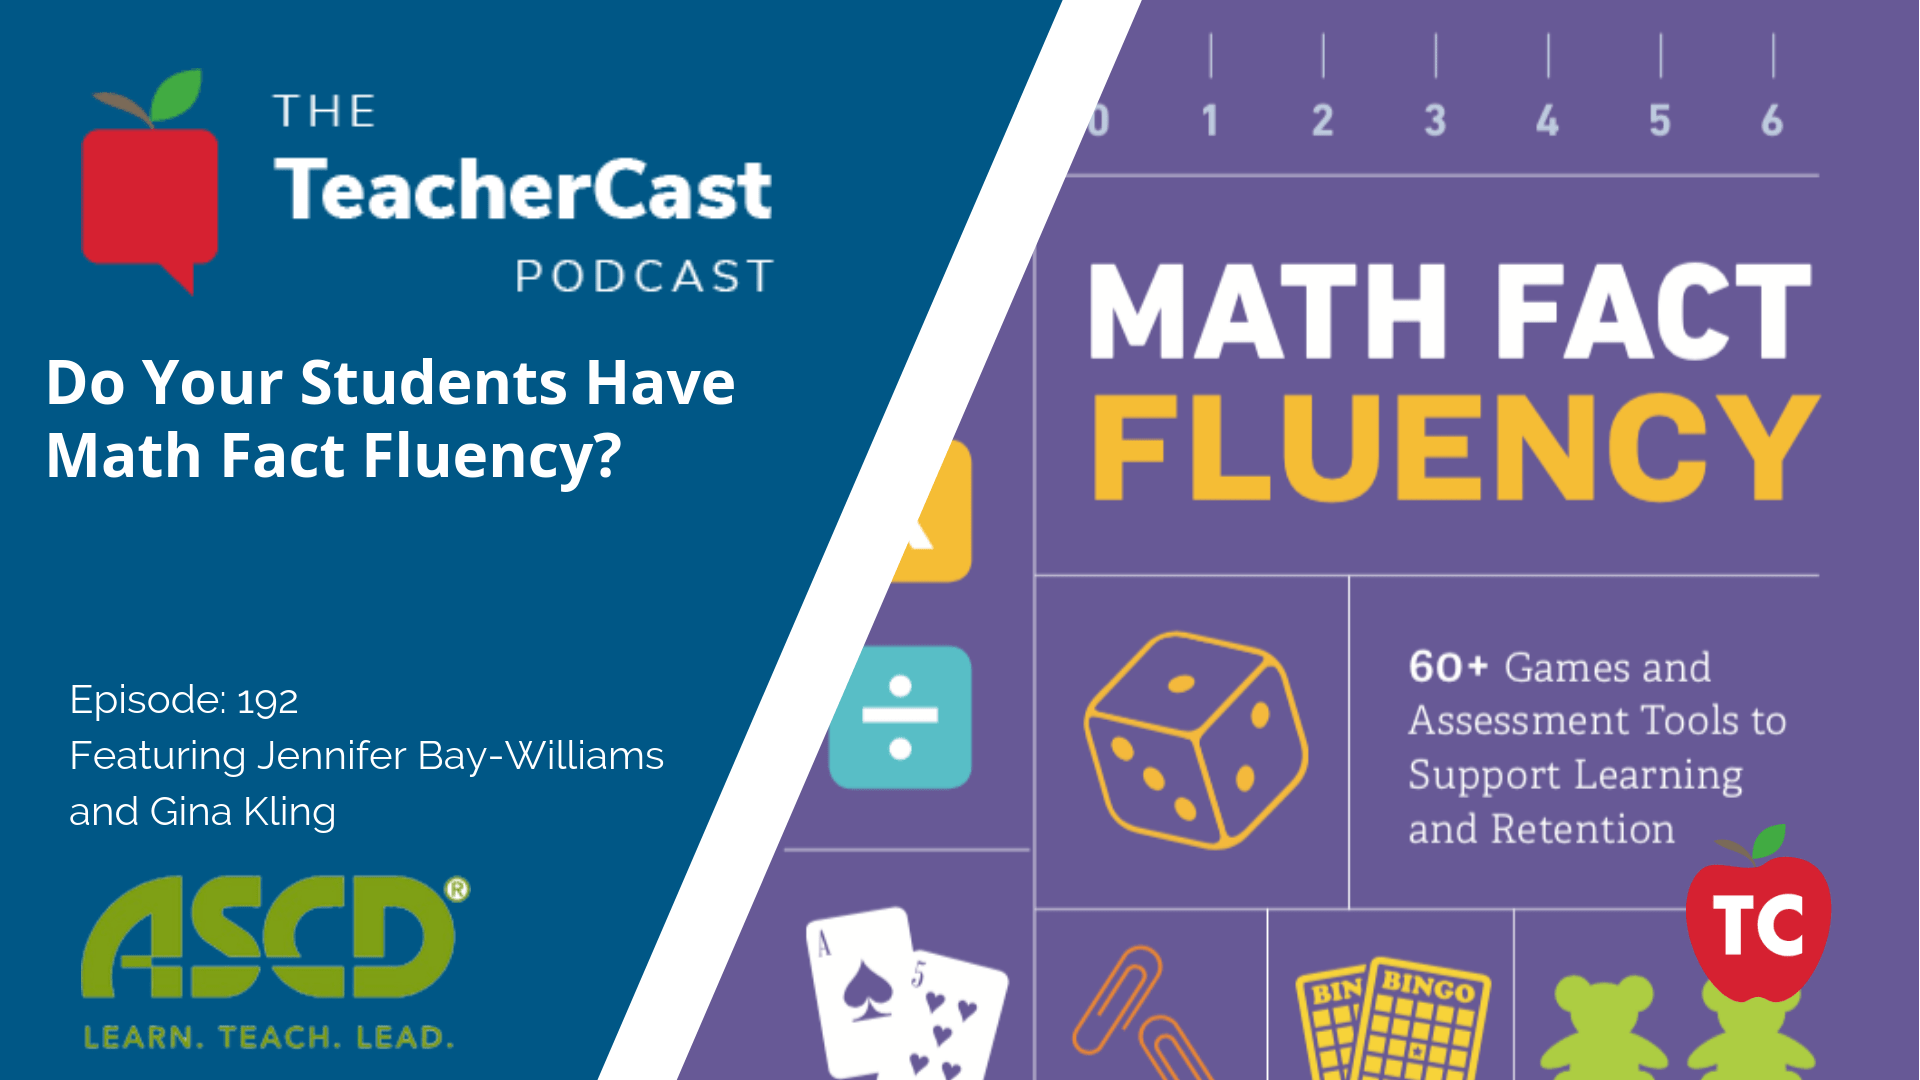 Do Your Students Have Math Fact Fluency